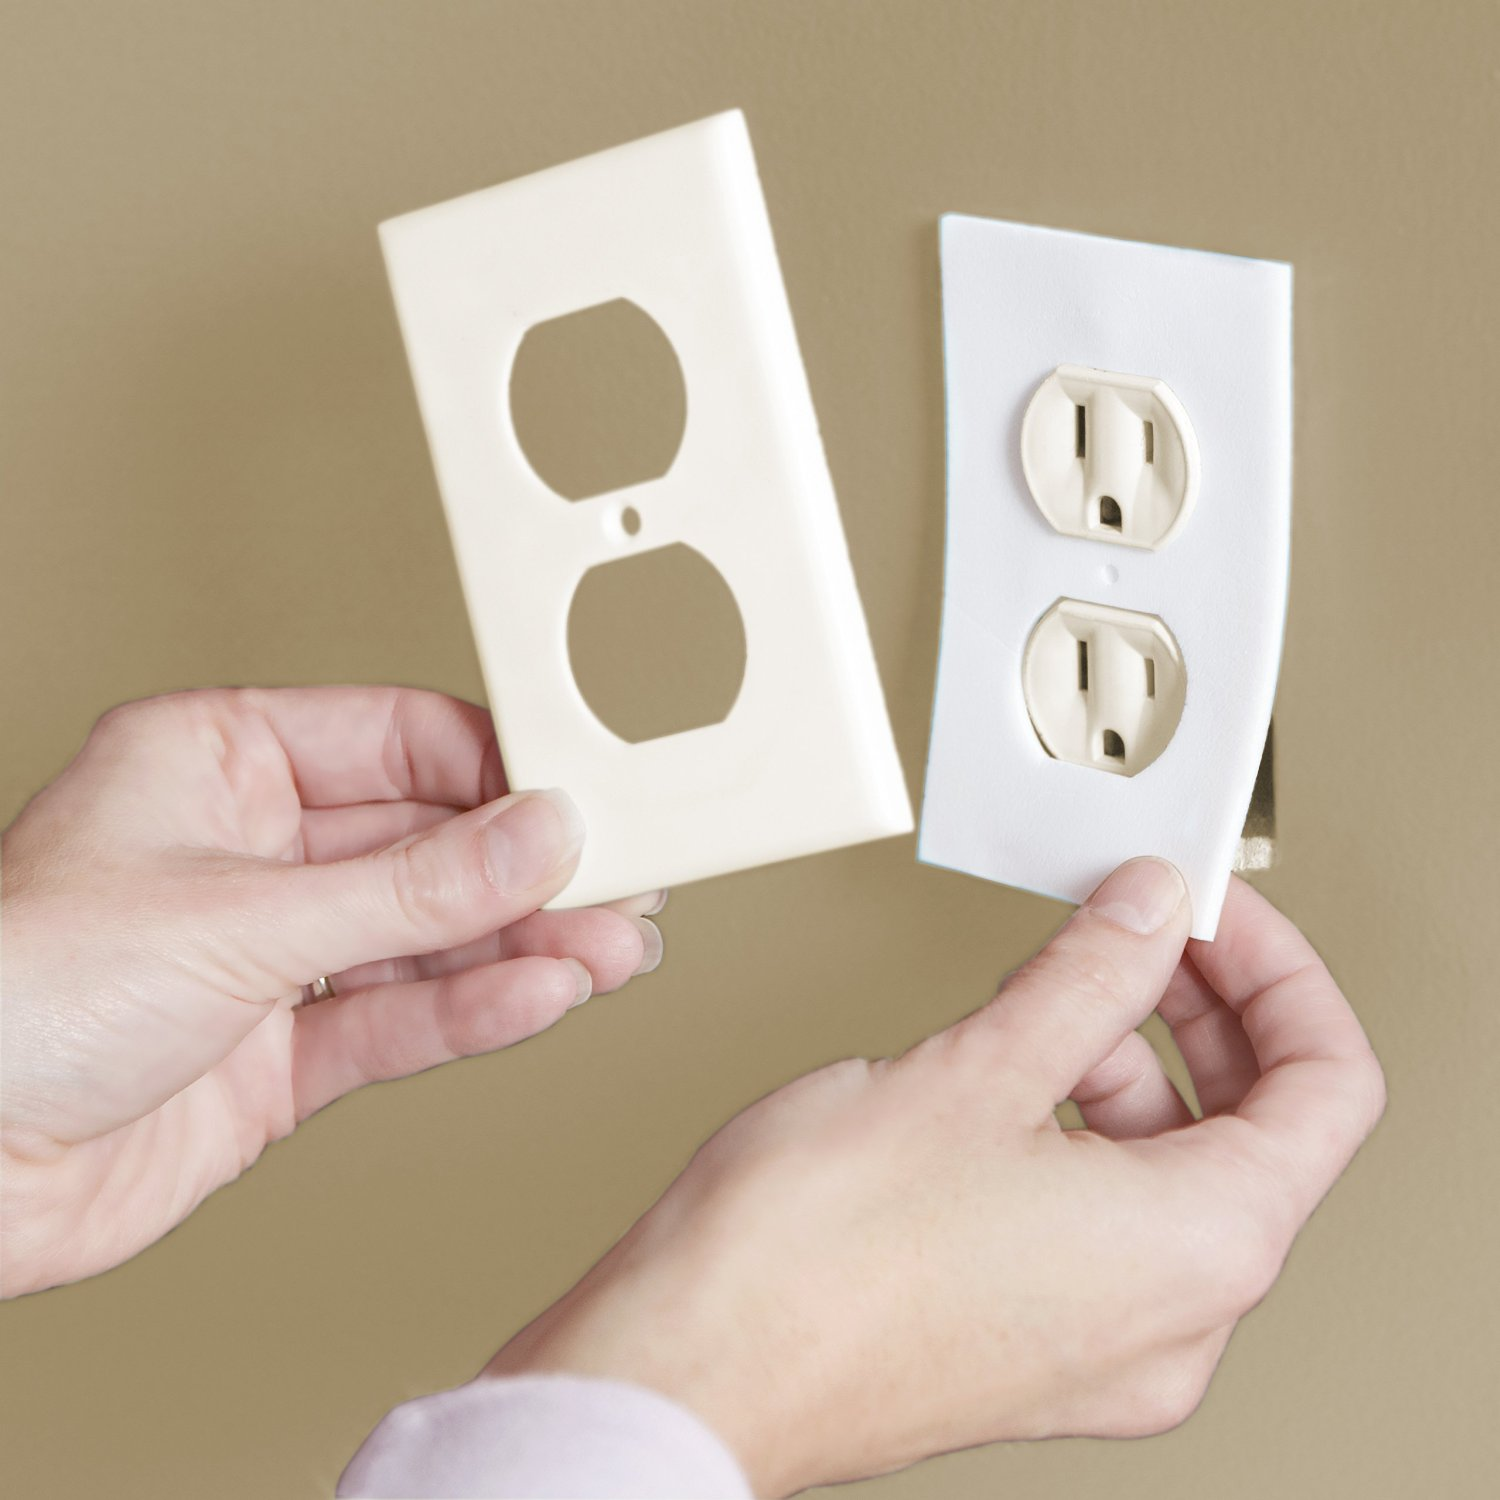 Insulation covers--help keep drafts from coming through your outlets #ad